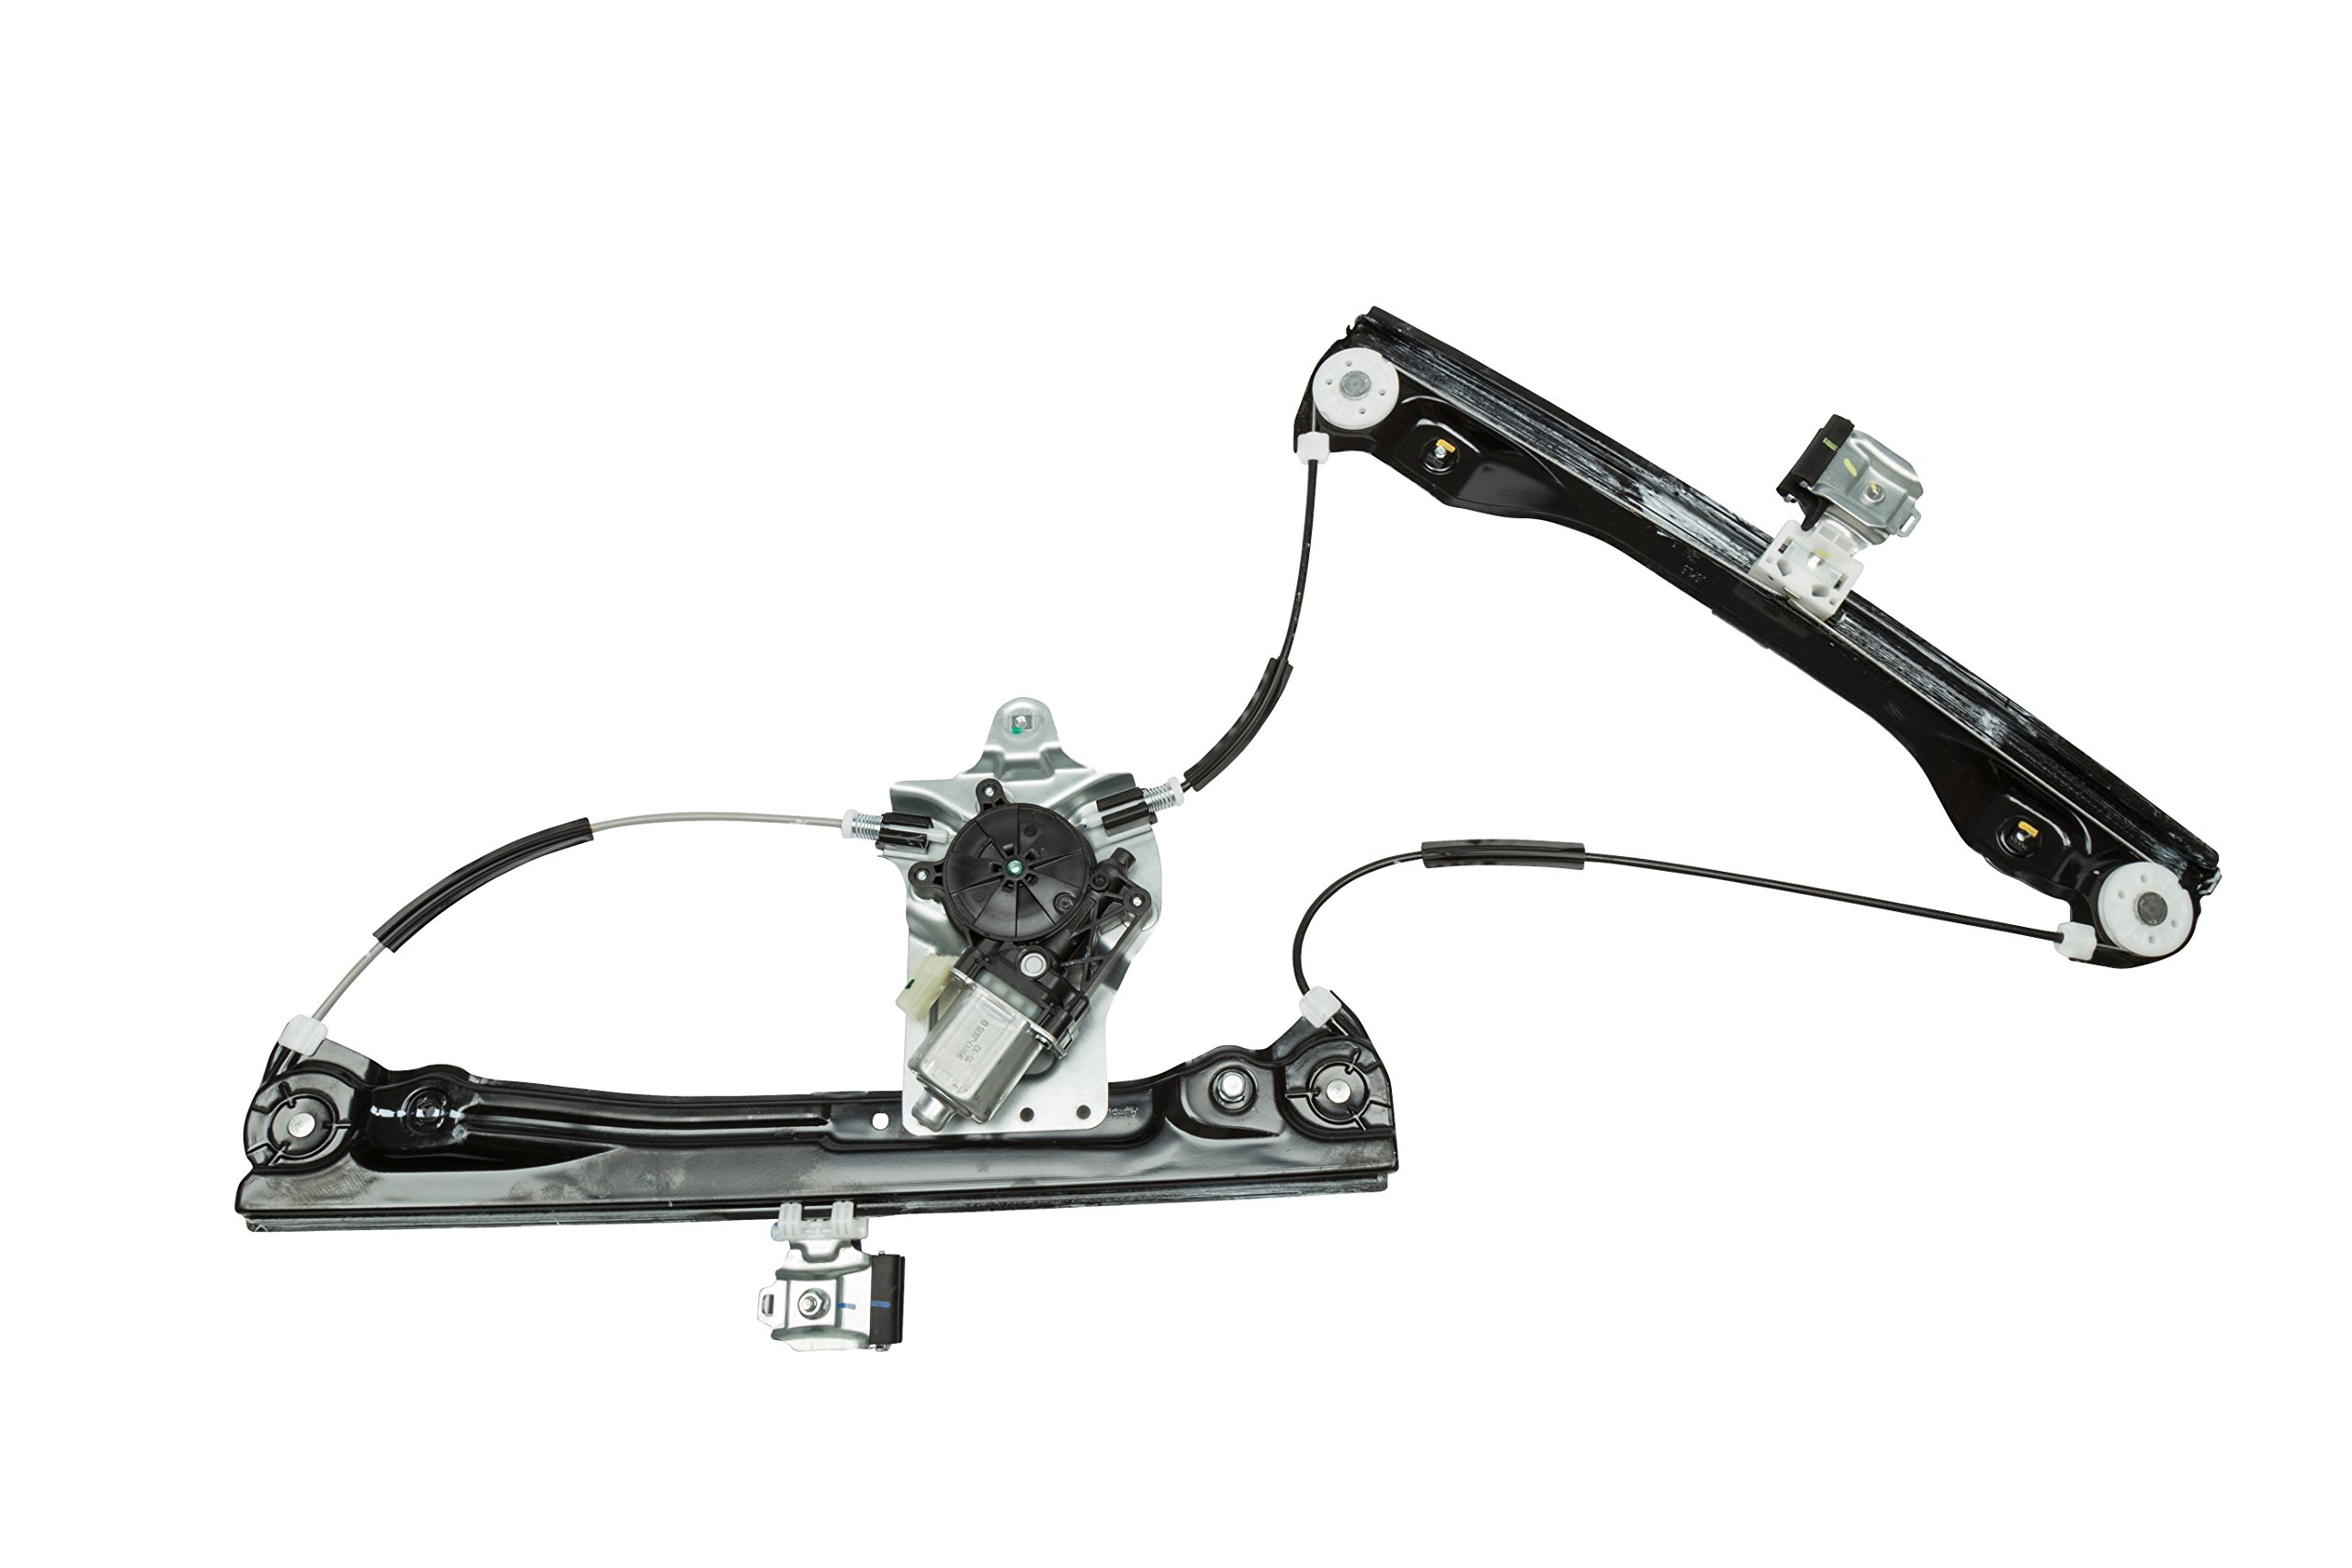 ACDelco 95382556 GM Original Equipment Front Driver Side Power Window Regulator and Motor Assembly by ACDelco